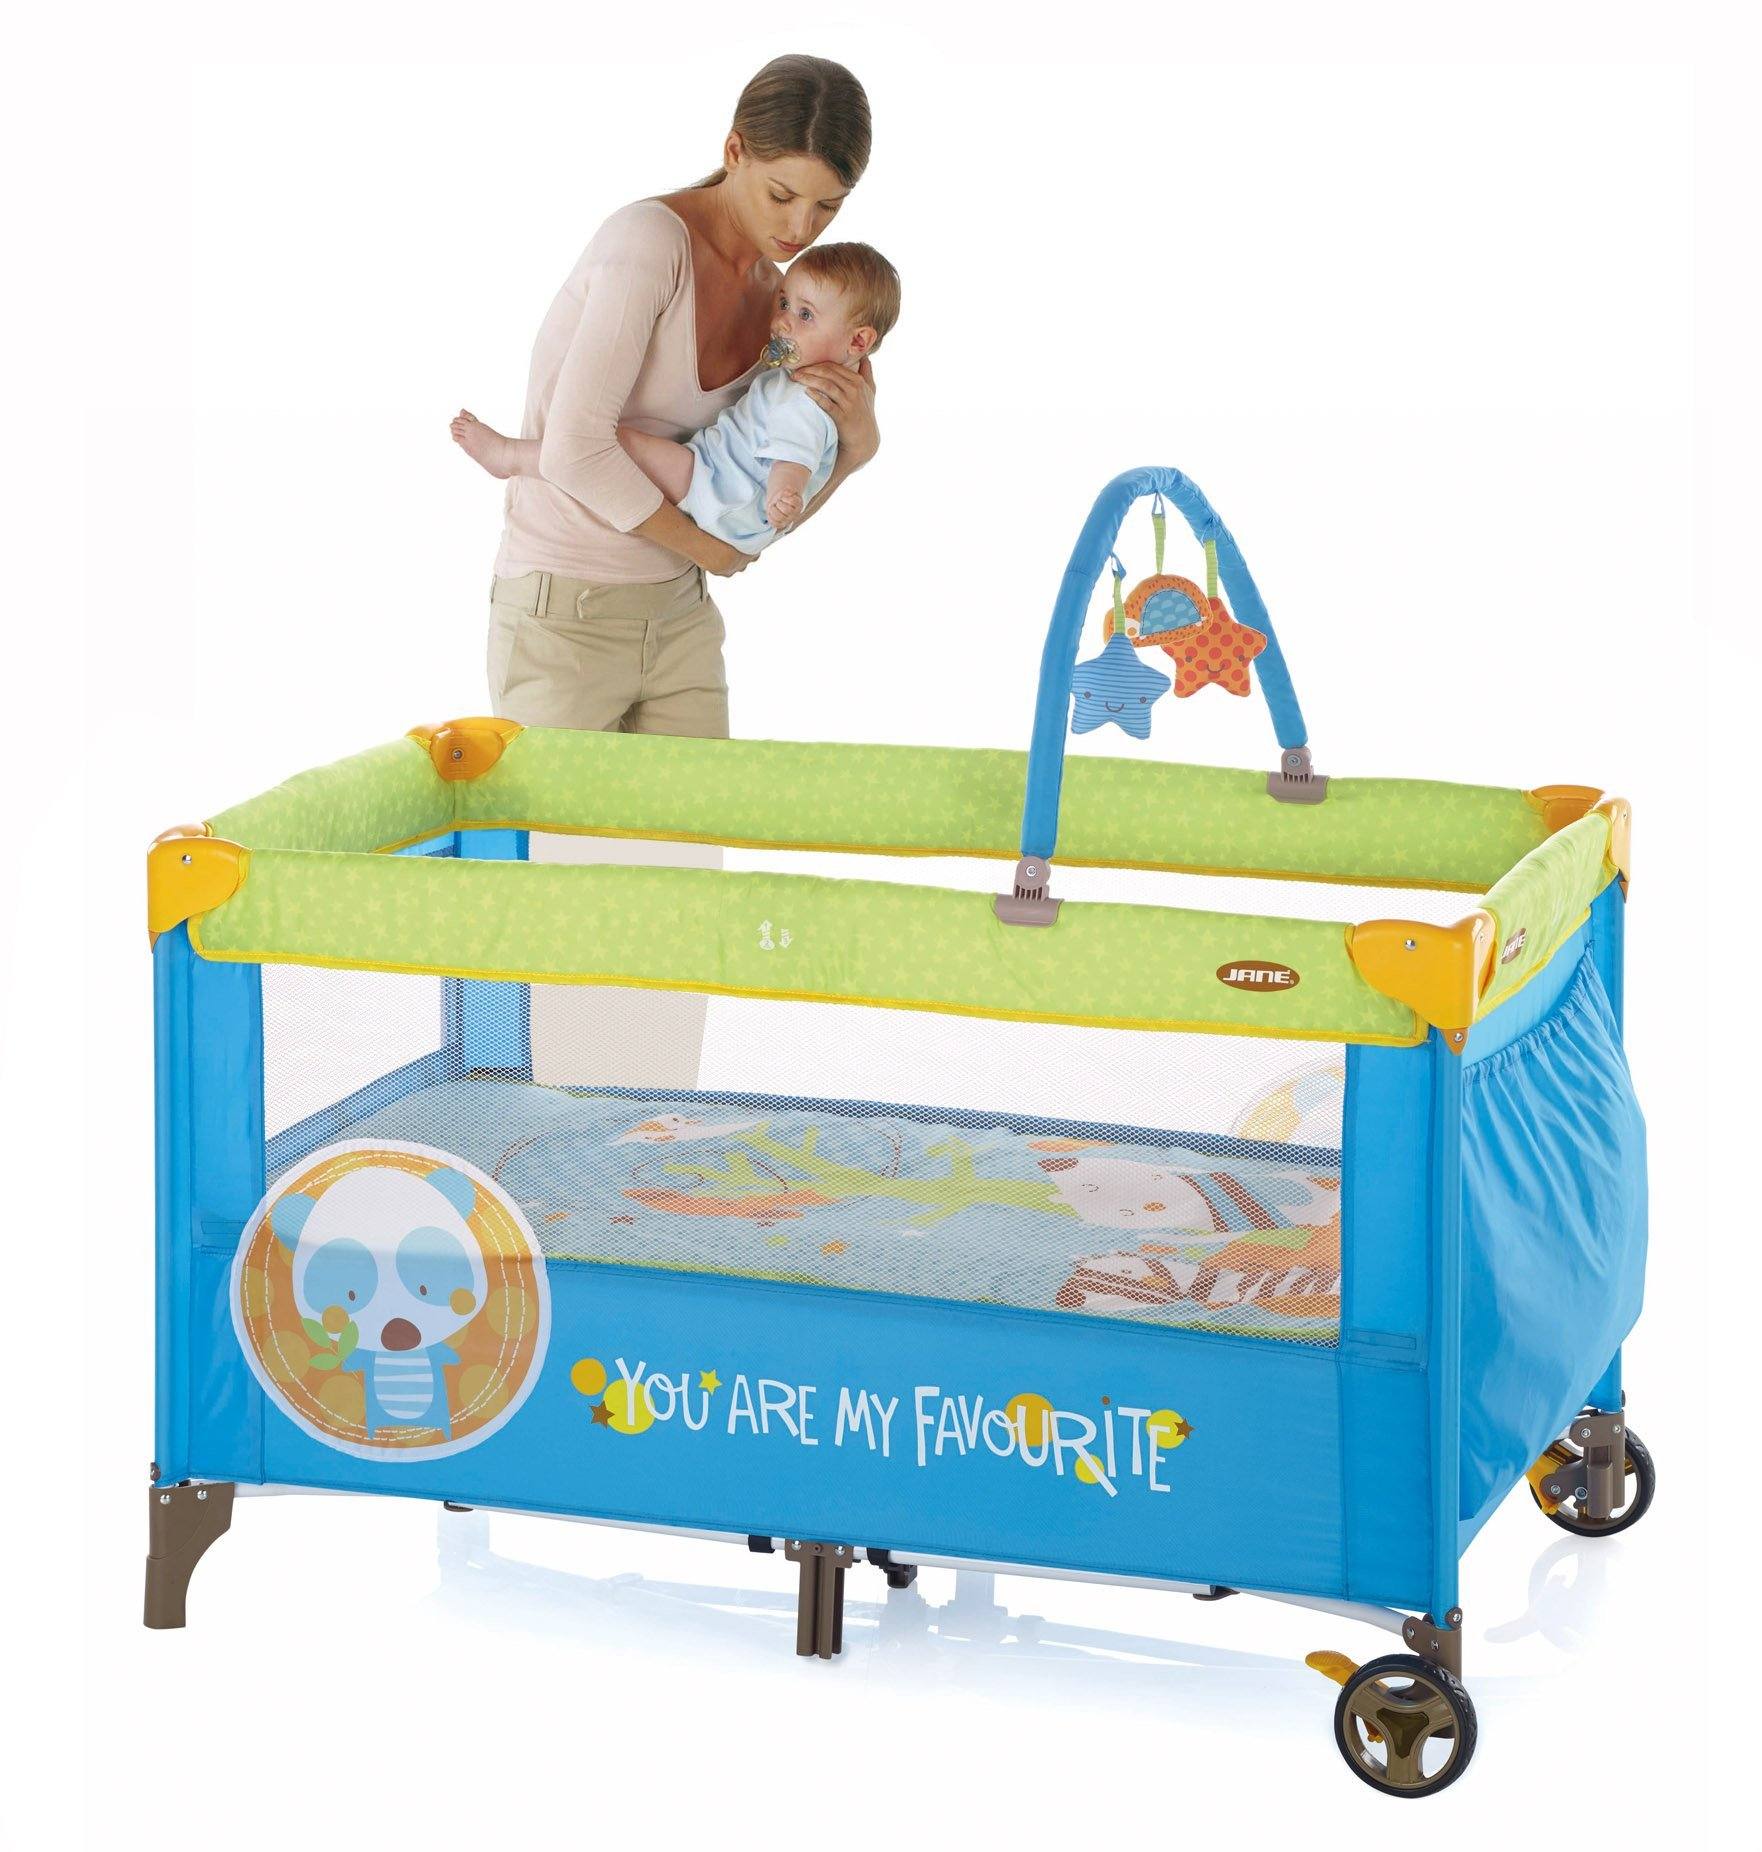 Jane Duo Level Travel Cot (Animal Dots) Jane, Inc. Suitable from birth to 3 years. 2 position base. The highest position is ideal for newborns and helps reduce the strain on your back when putting your baby down to sleep. Toy arch with toys included. 2